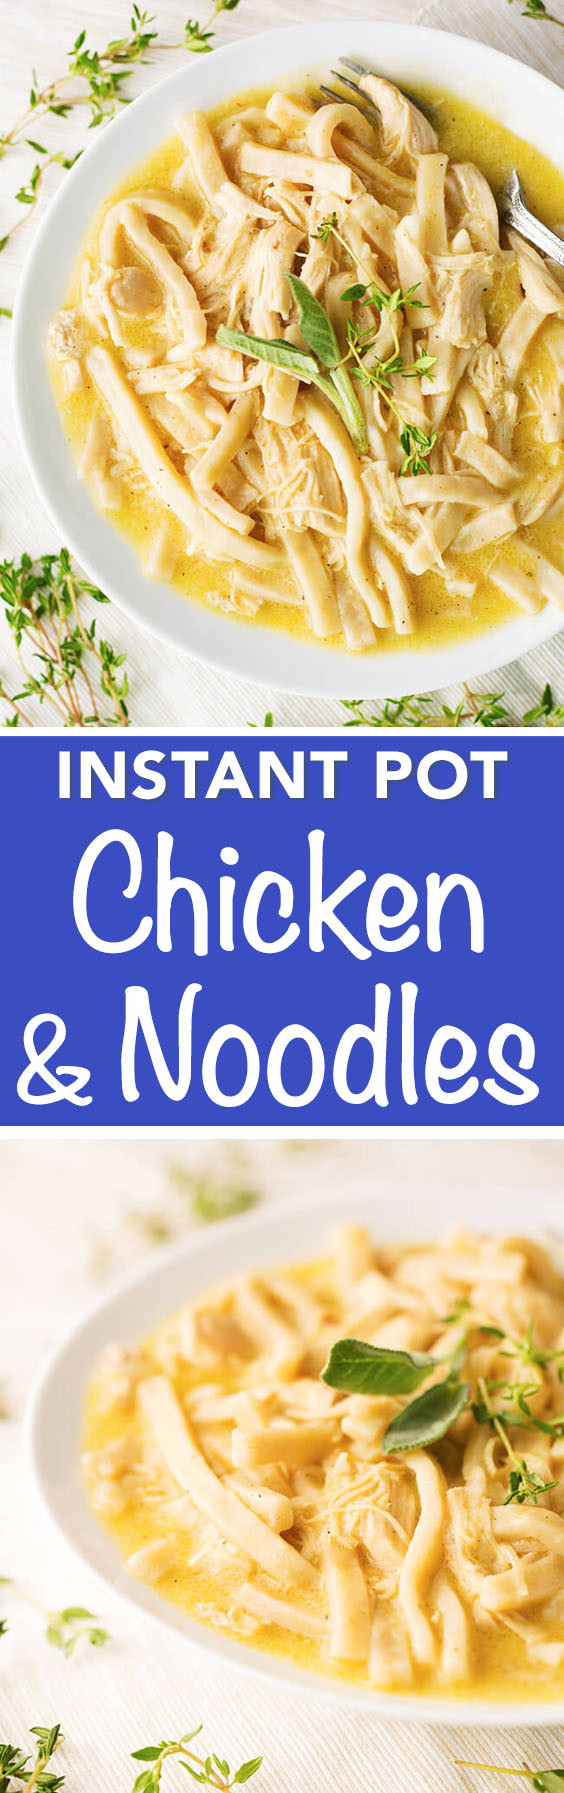 Chicken And Noodles Instant Pot  Instant Pot Chicken and Noodles